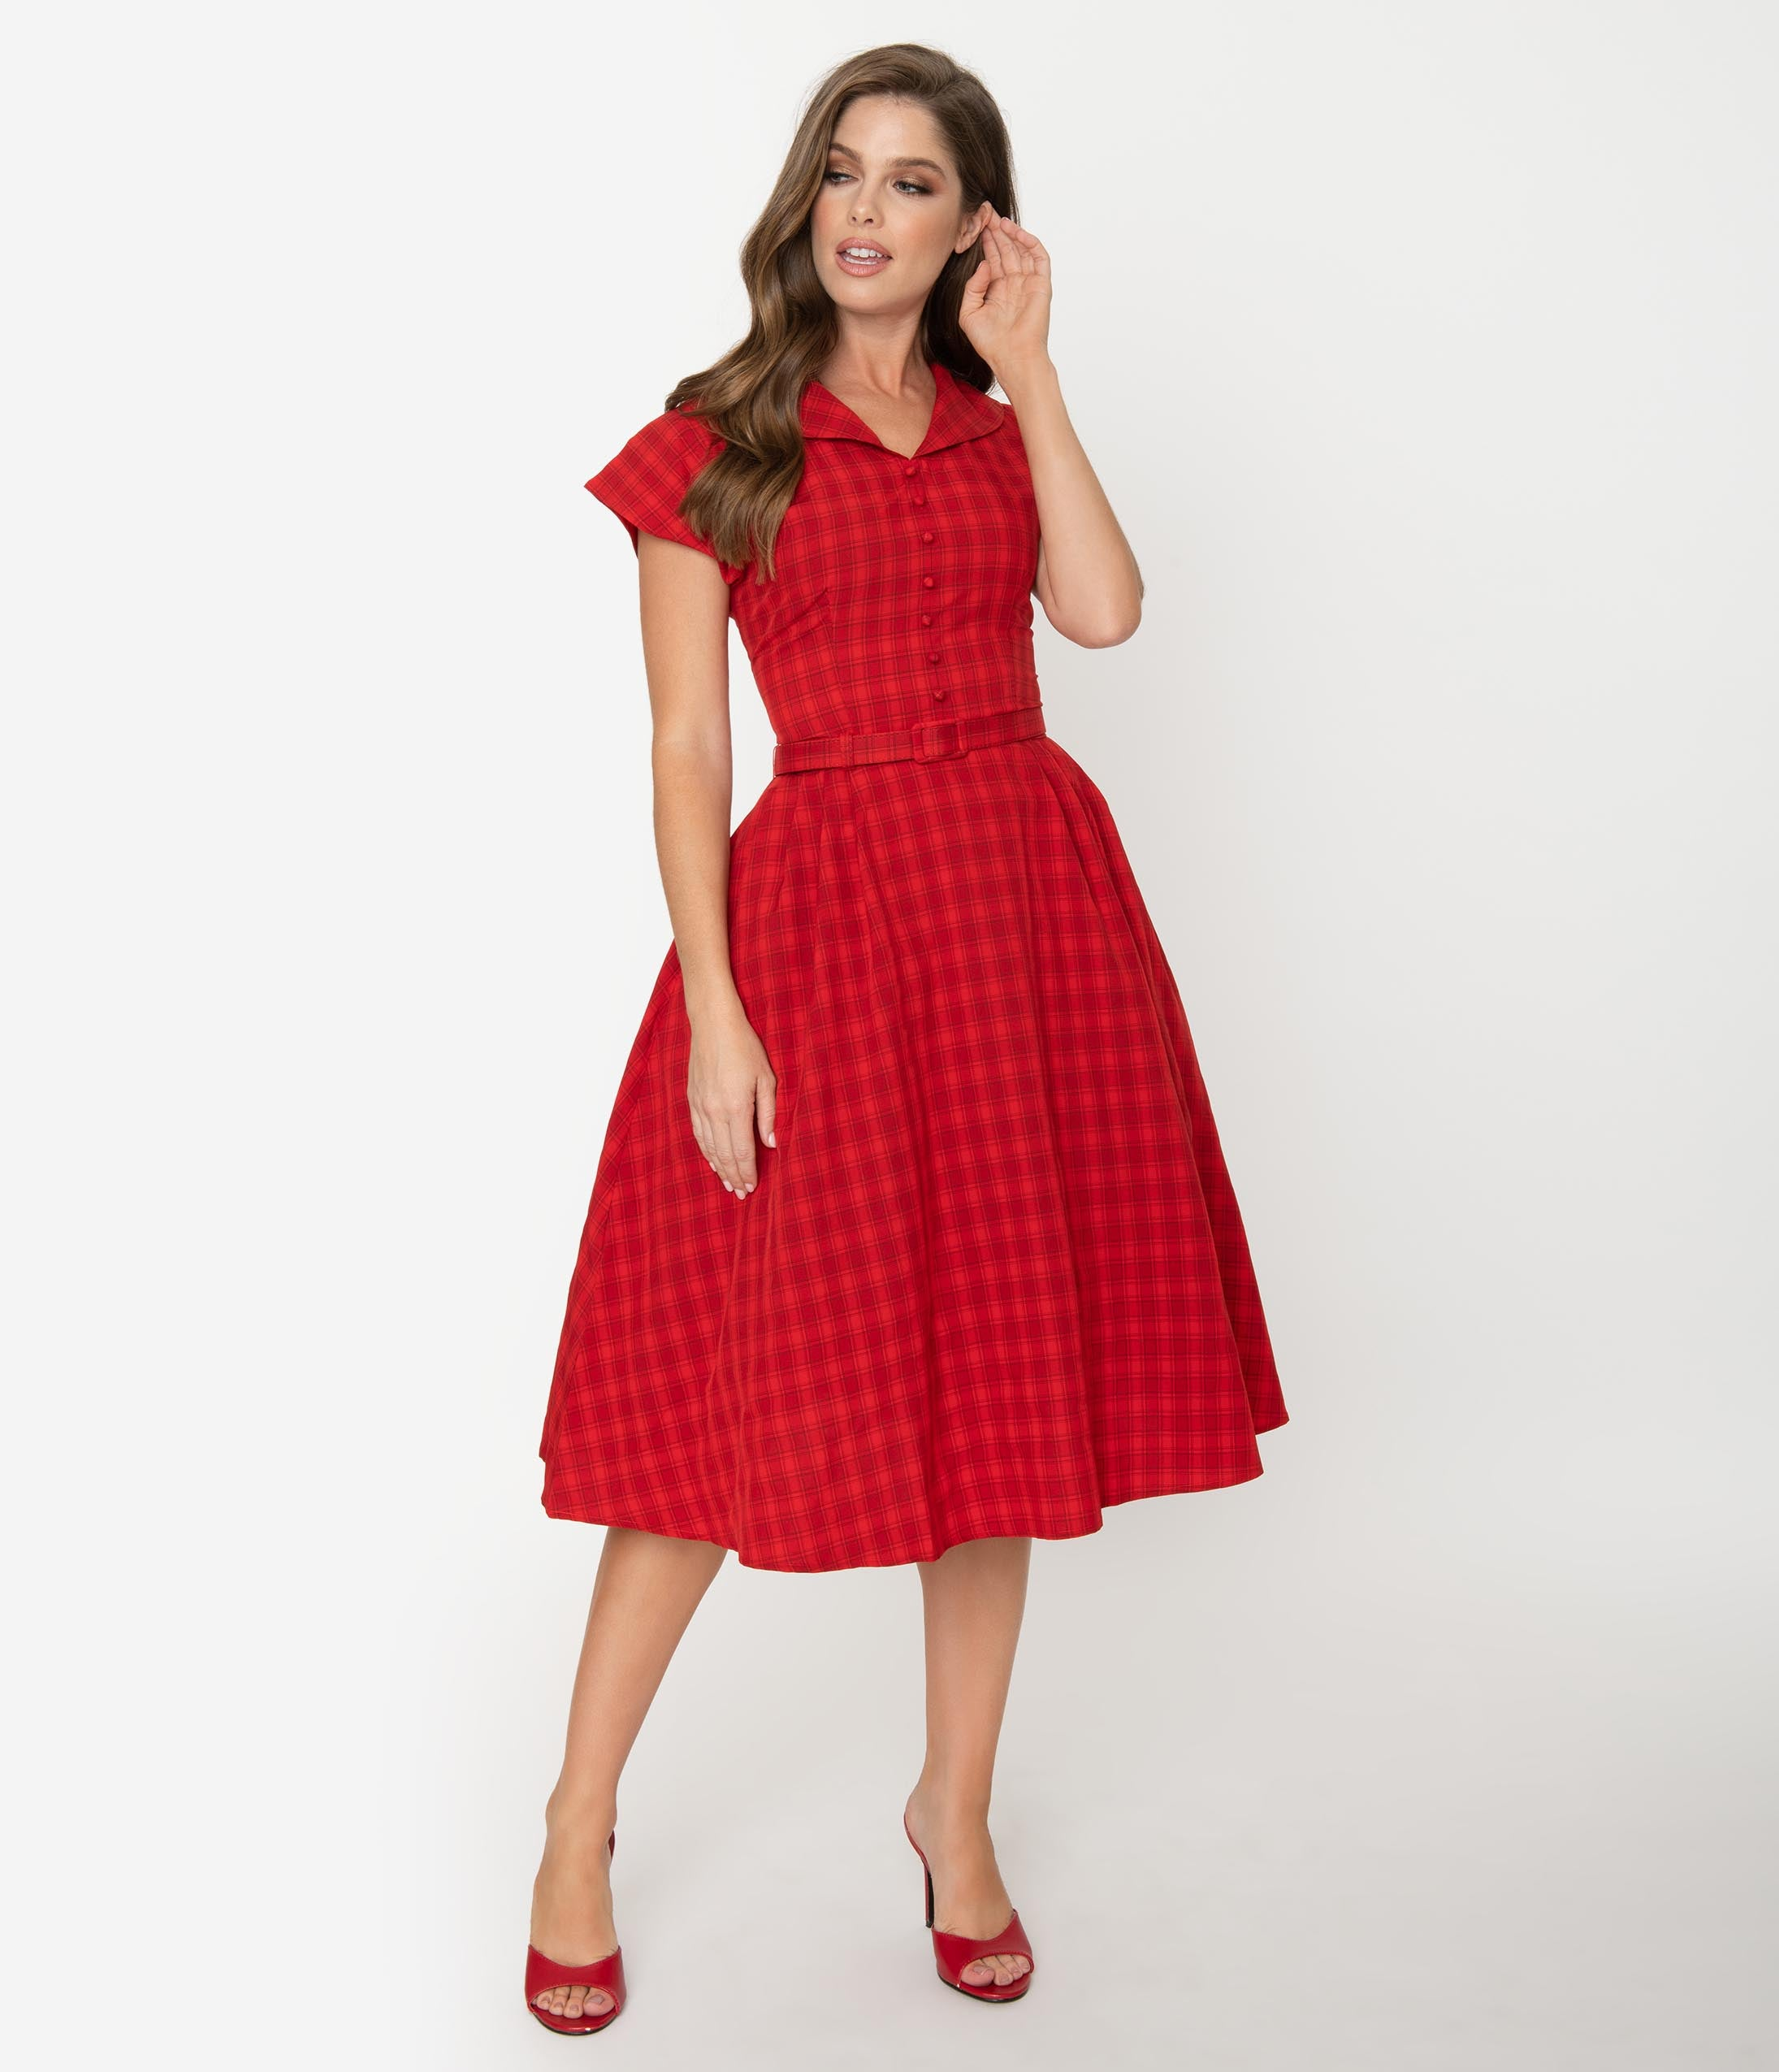 1950s Dresses, 50s Dresses | 1950s Style Dresses Collectif 1950S Style Red Plaid Cap Sleeve Dinah Swing Dress $68.00 AT vintagedancer.com